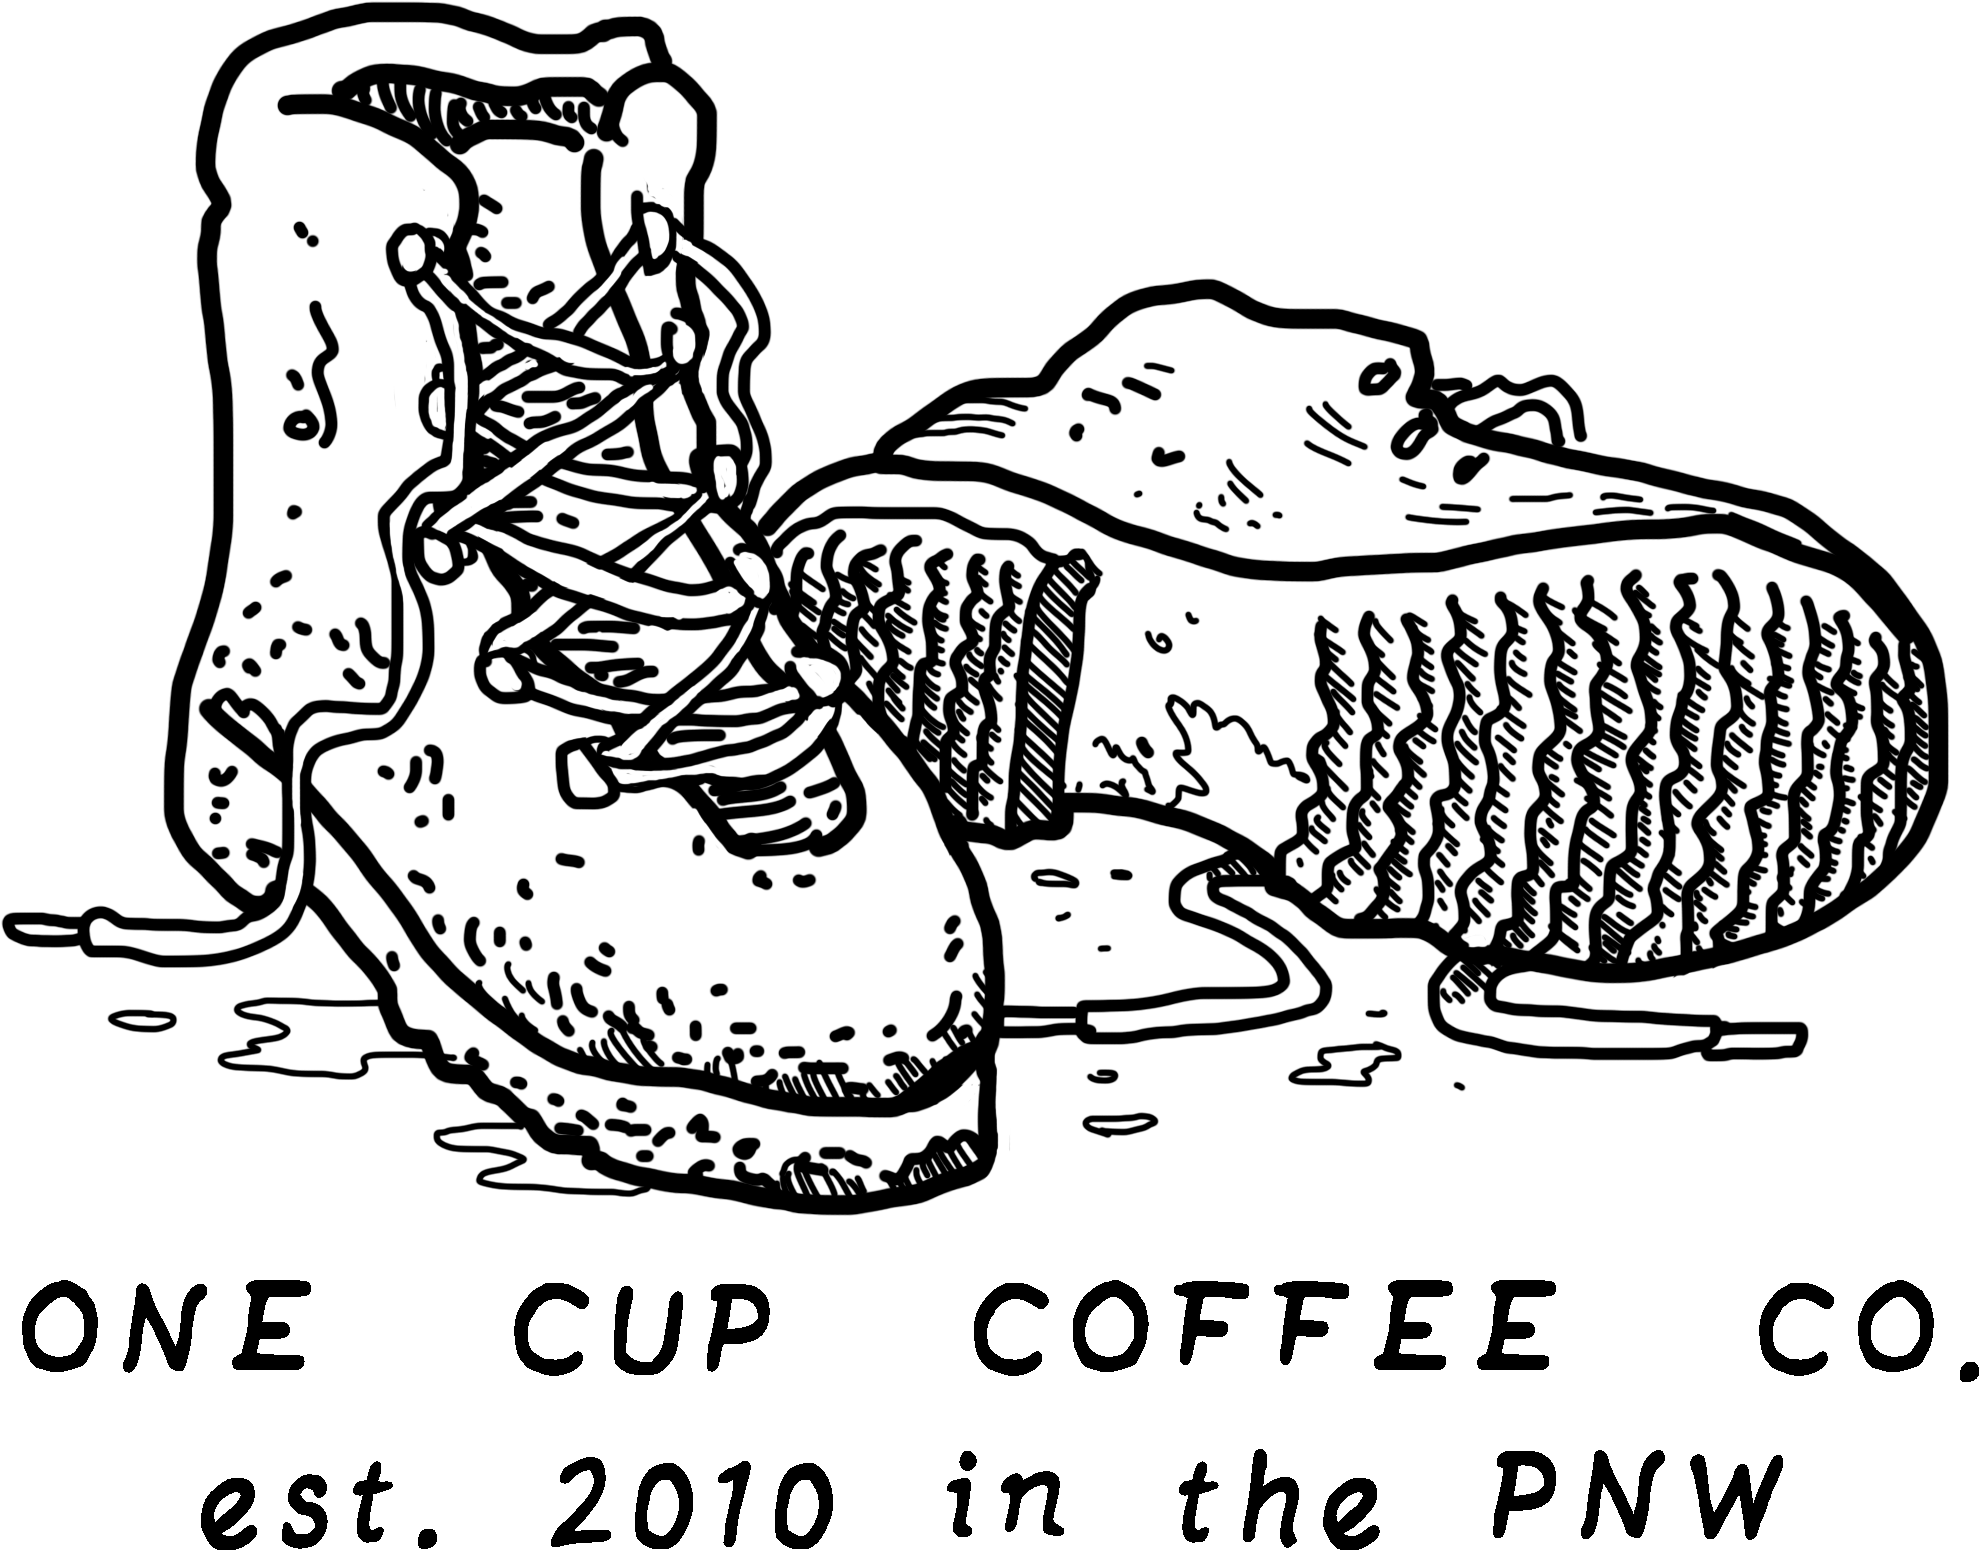 boots final.png